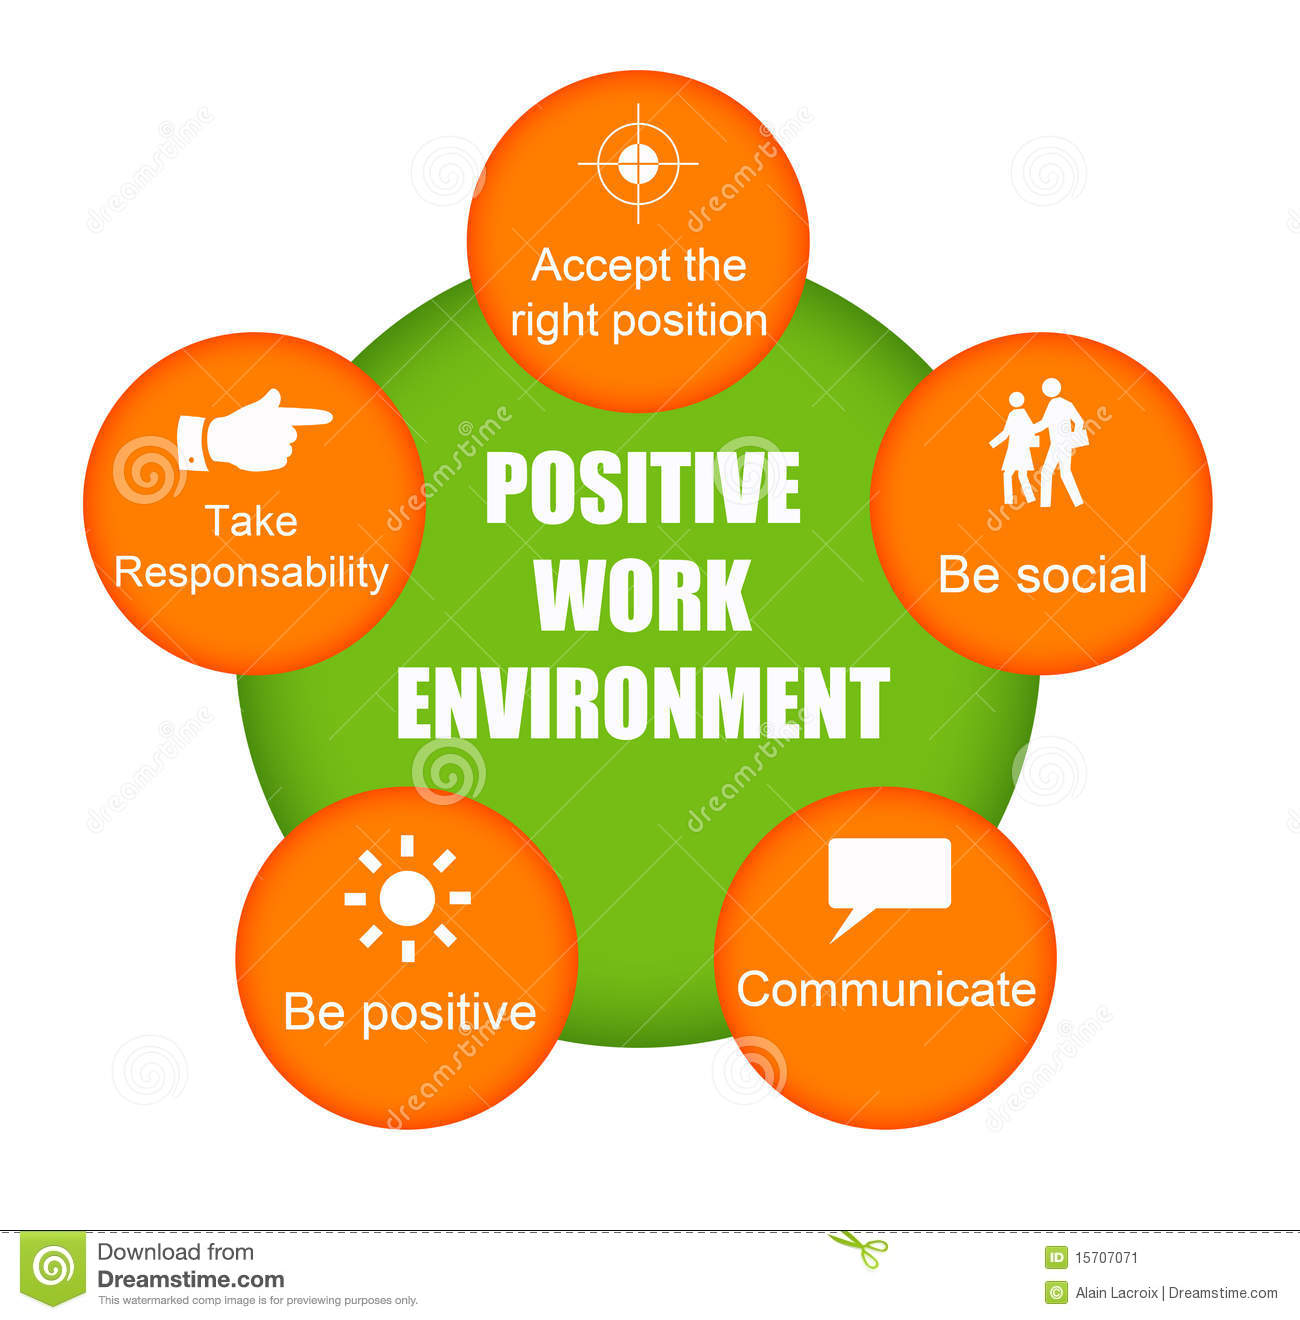 Positive Work Environment Stock Image   Image  15707071